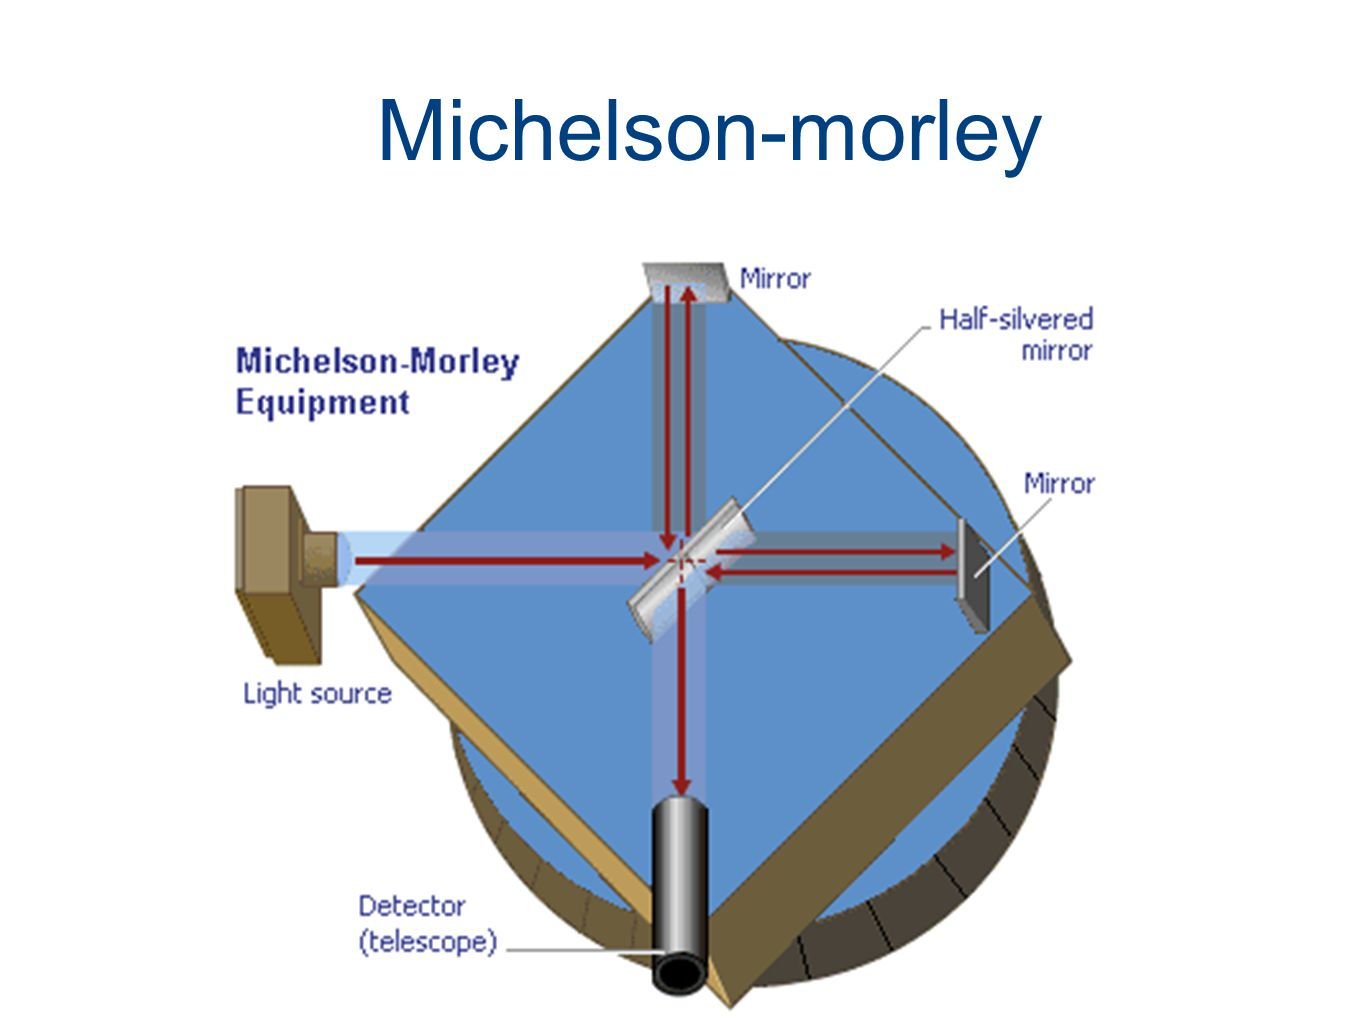 5 Michelson-morley Apparatus Up & down stream versus side by side LF contraction